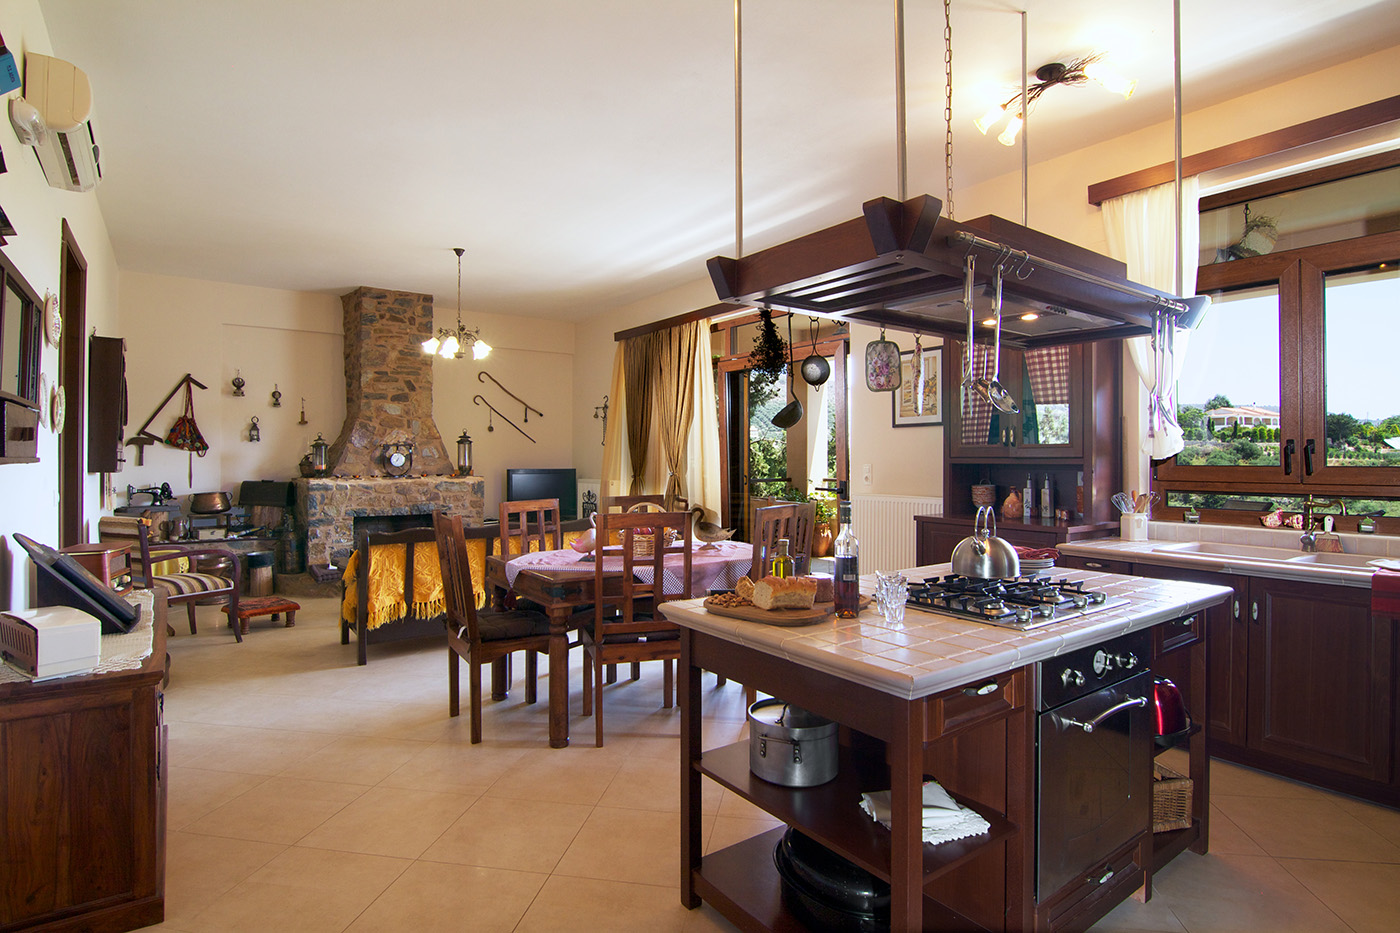 Indoors - Kitchen, dining and living area